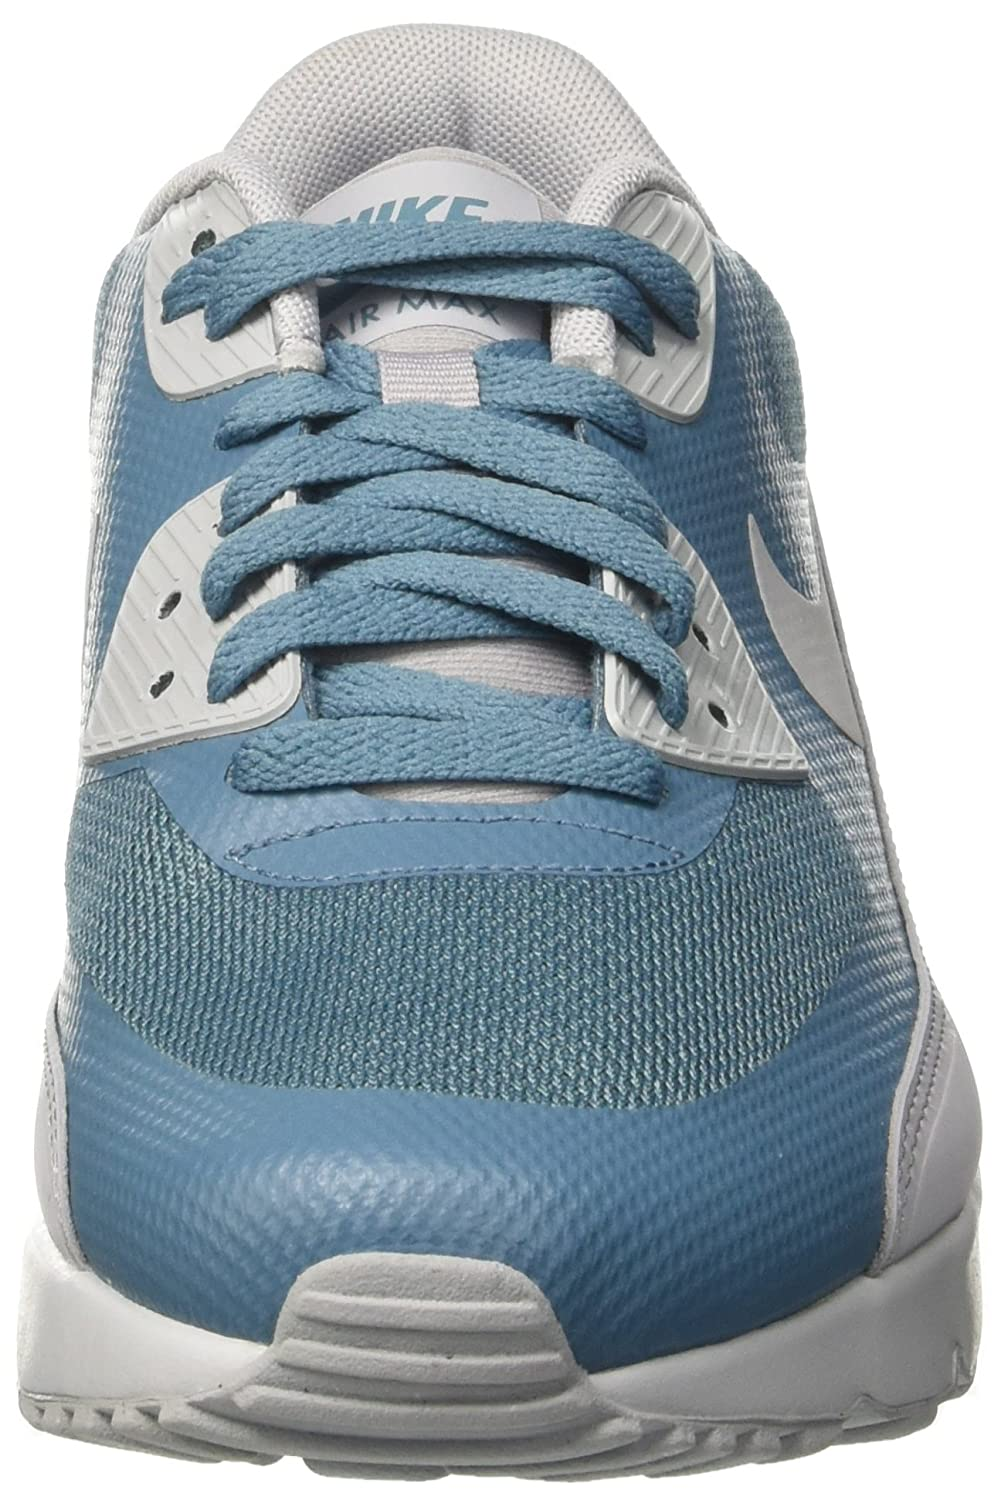 Nike Men's AIR MAX 90 Ultra 2.0 Essential, Smokey BlueWolf Grey, 9 M US